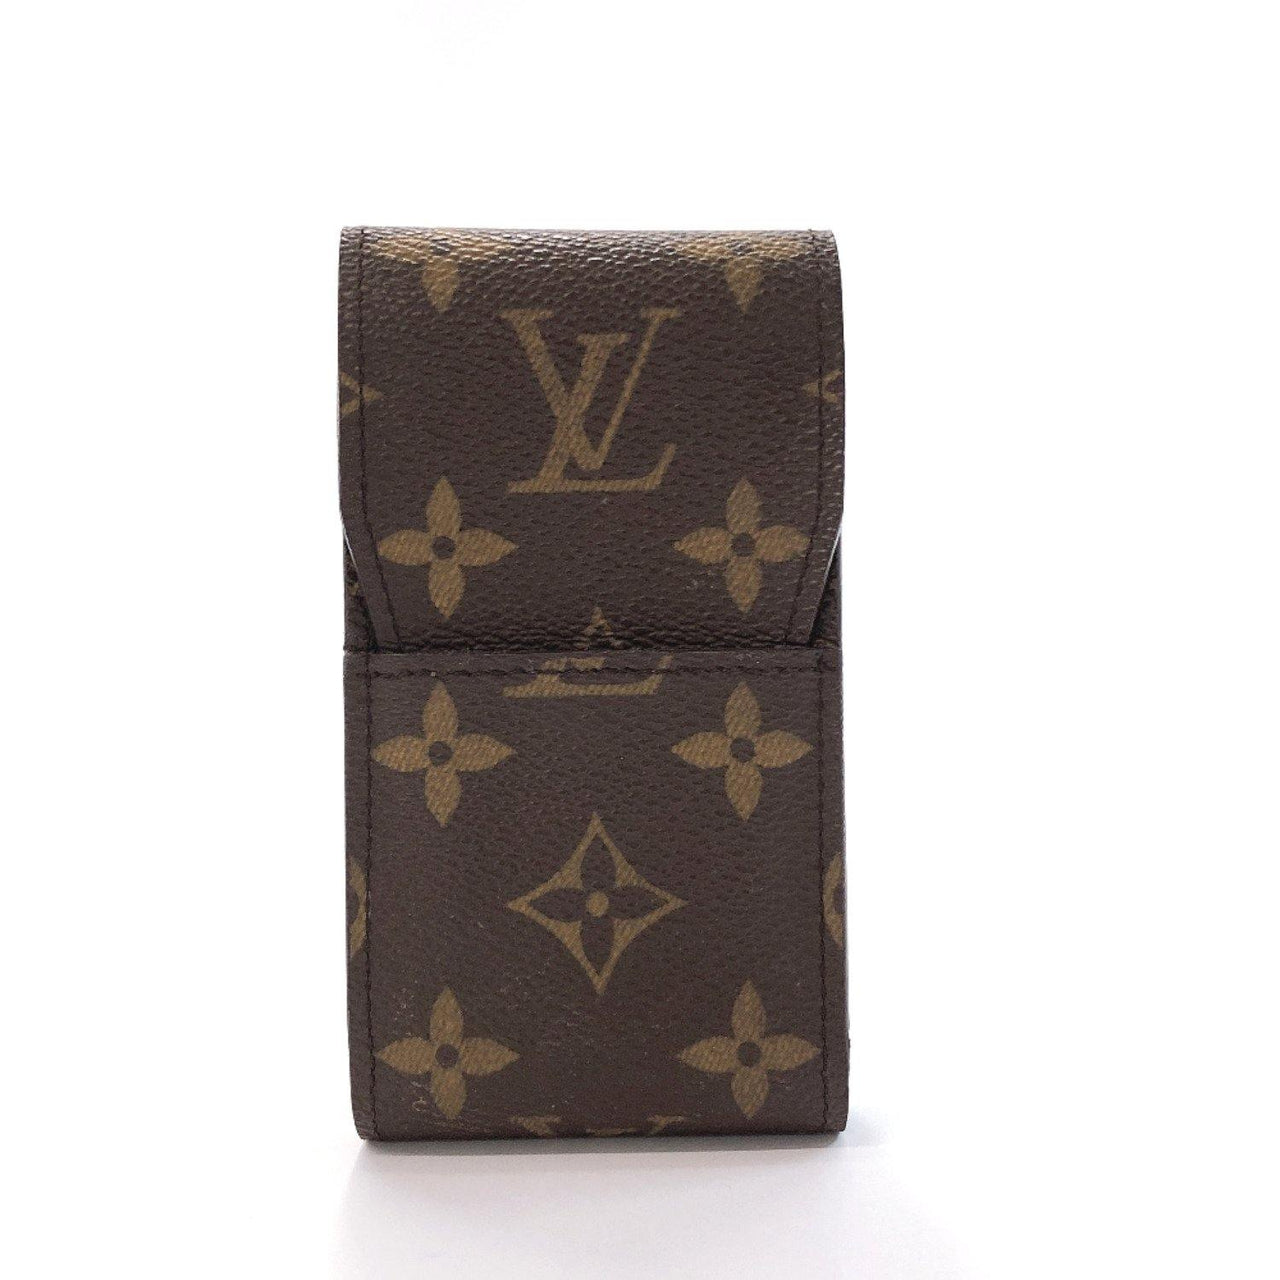 LOUIS VUITTON Other accessories M63024 Etui cigarette Cigarette case Monogram canvas Brown unisex Used - JP-BRANDS.com